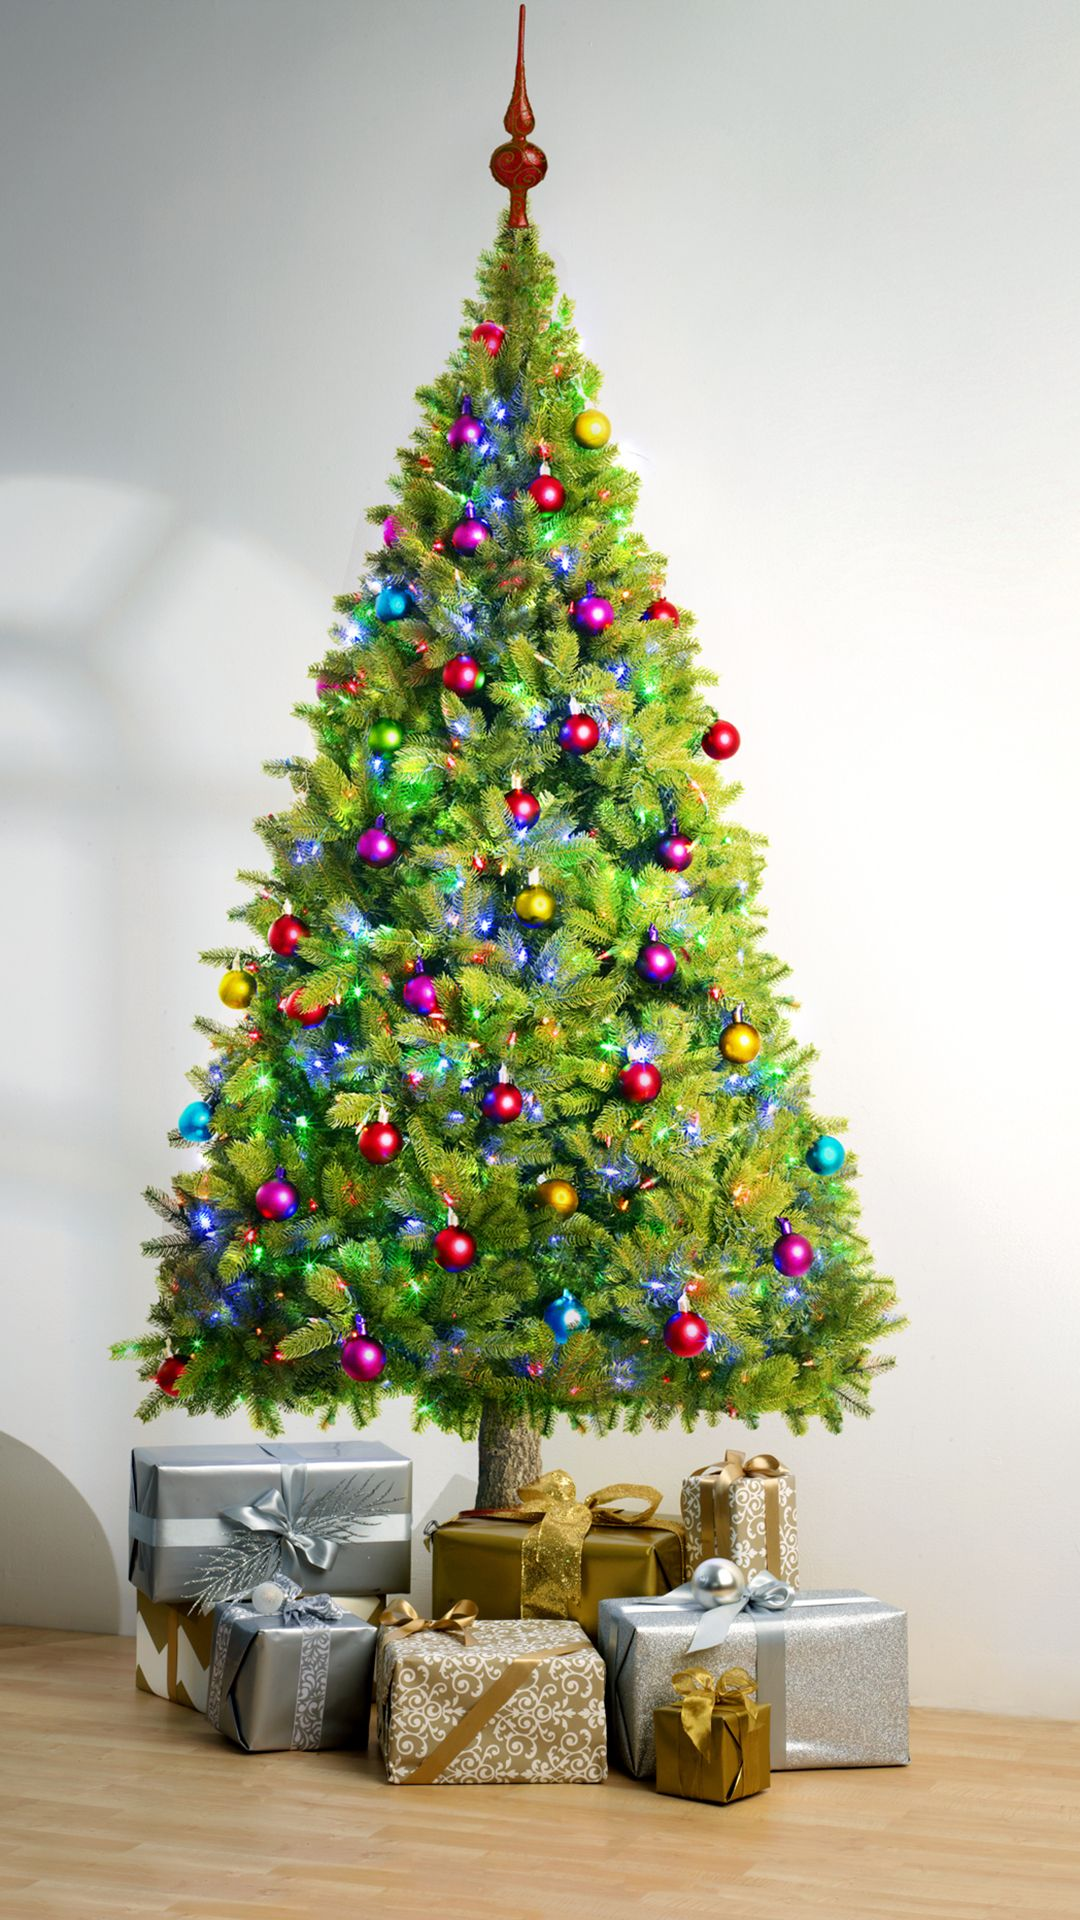 1080x1920 Christmas tree - Best htc one wallpapers, free and easy to download